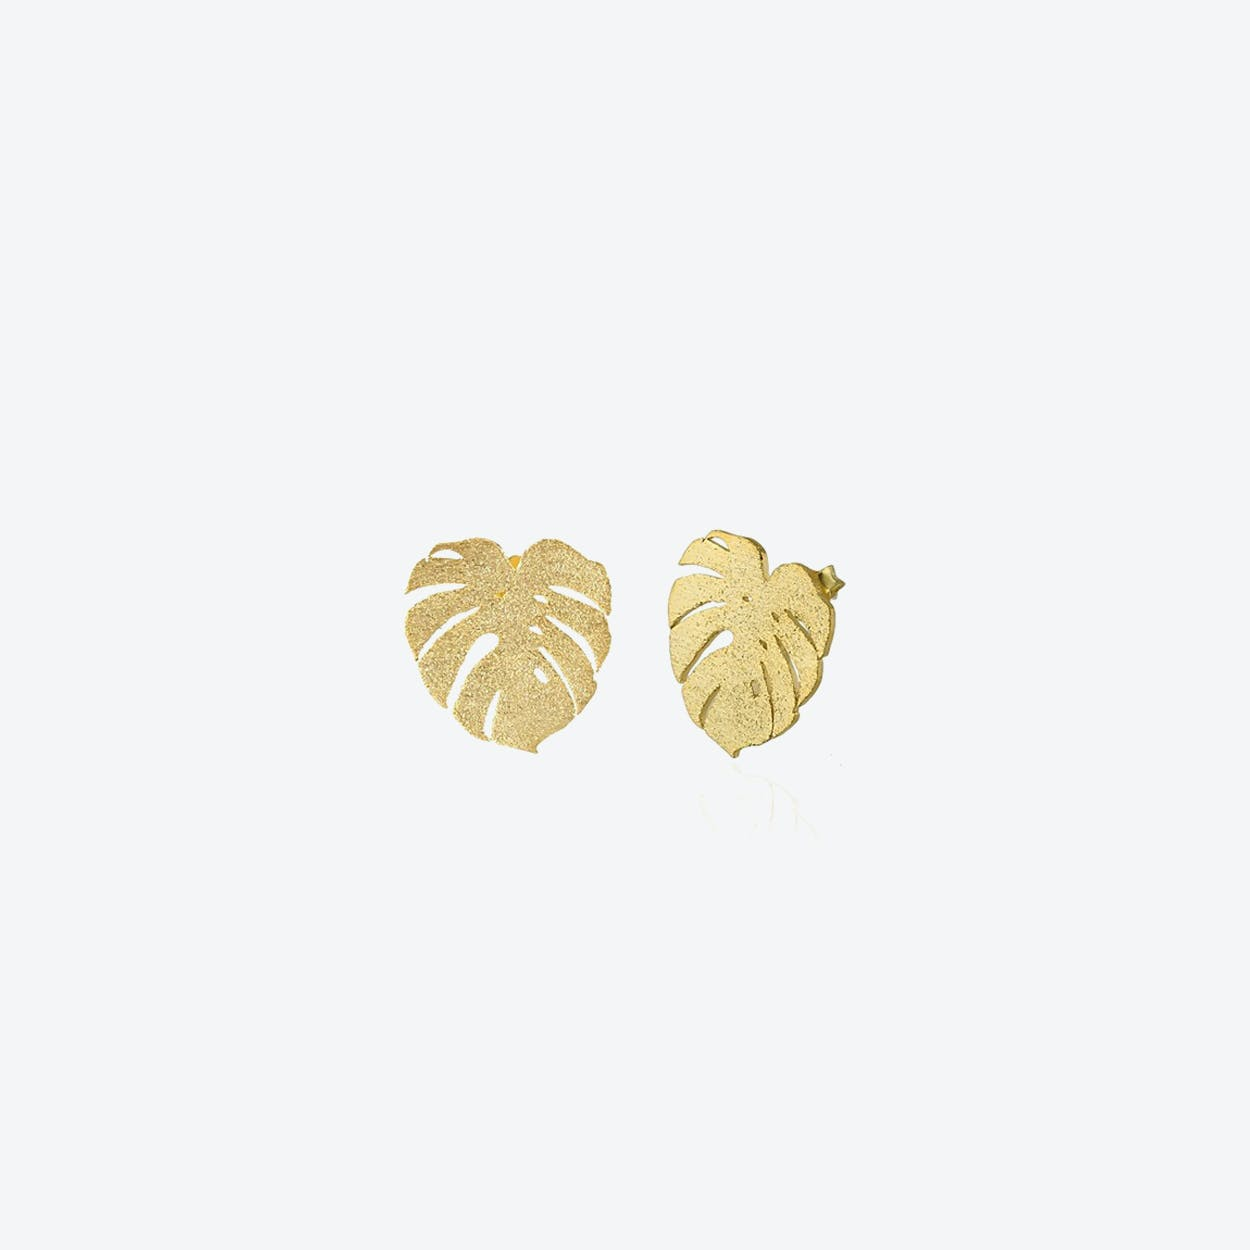 Farfara Earrings